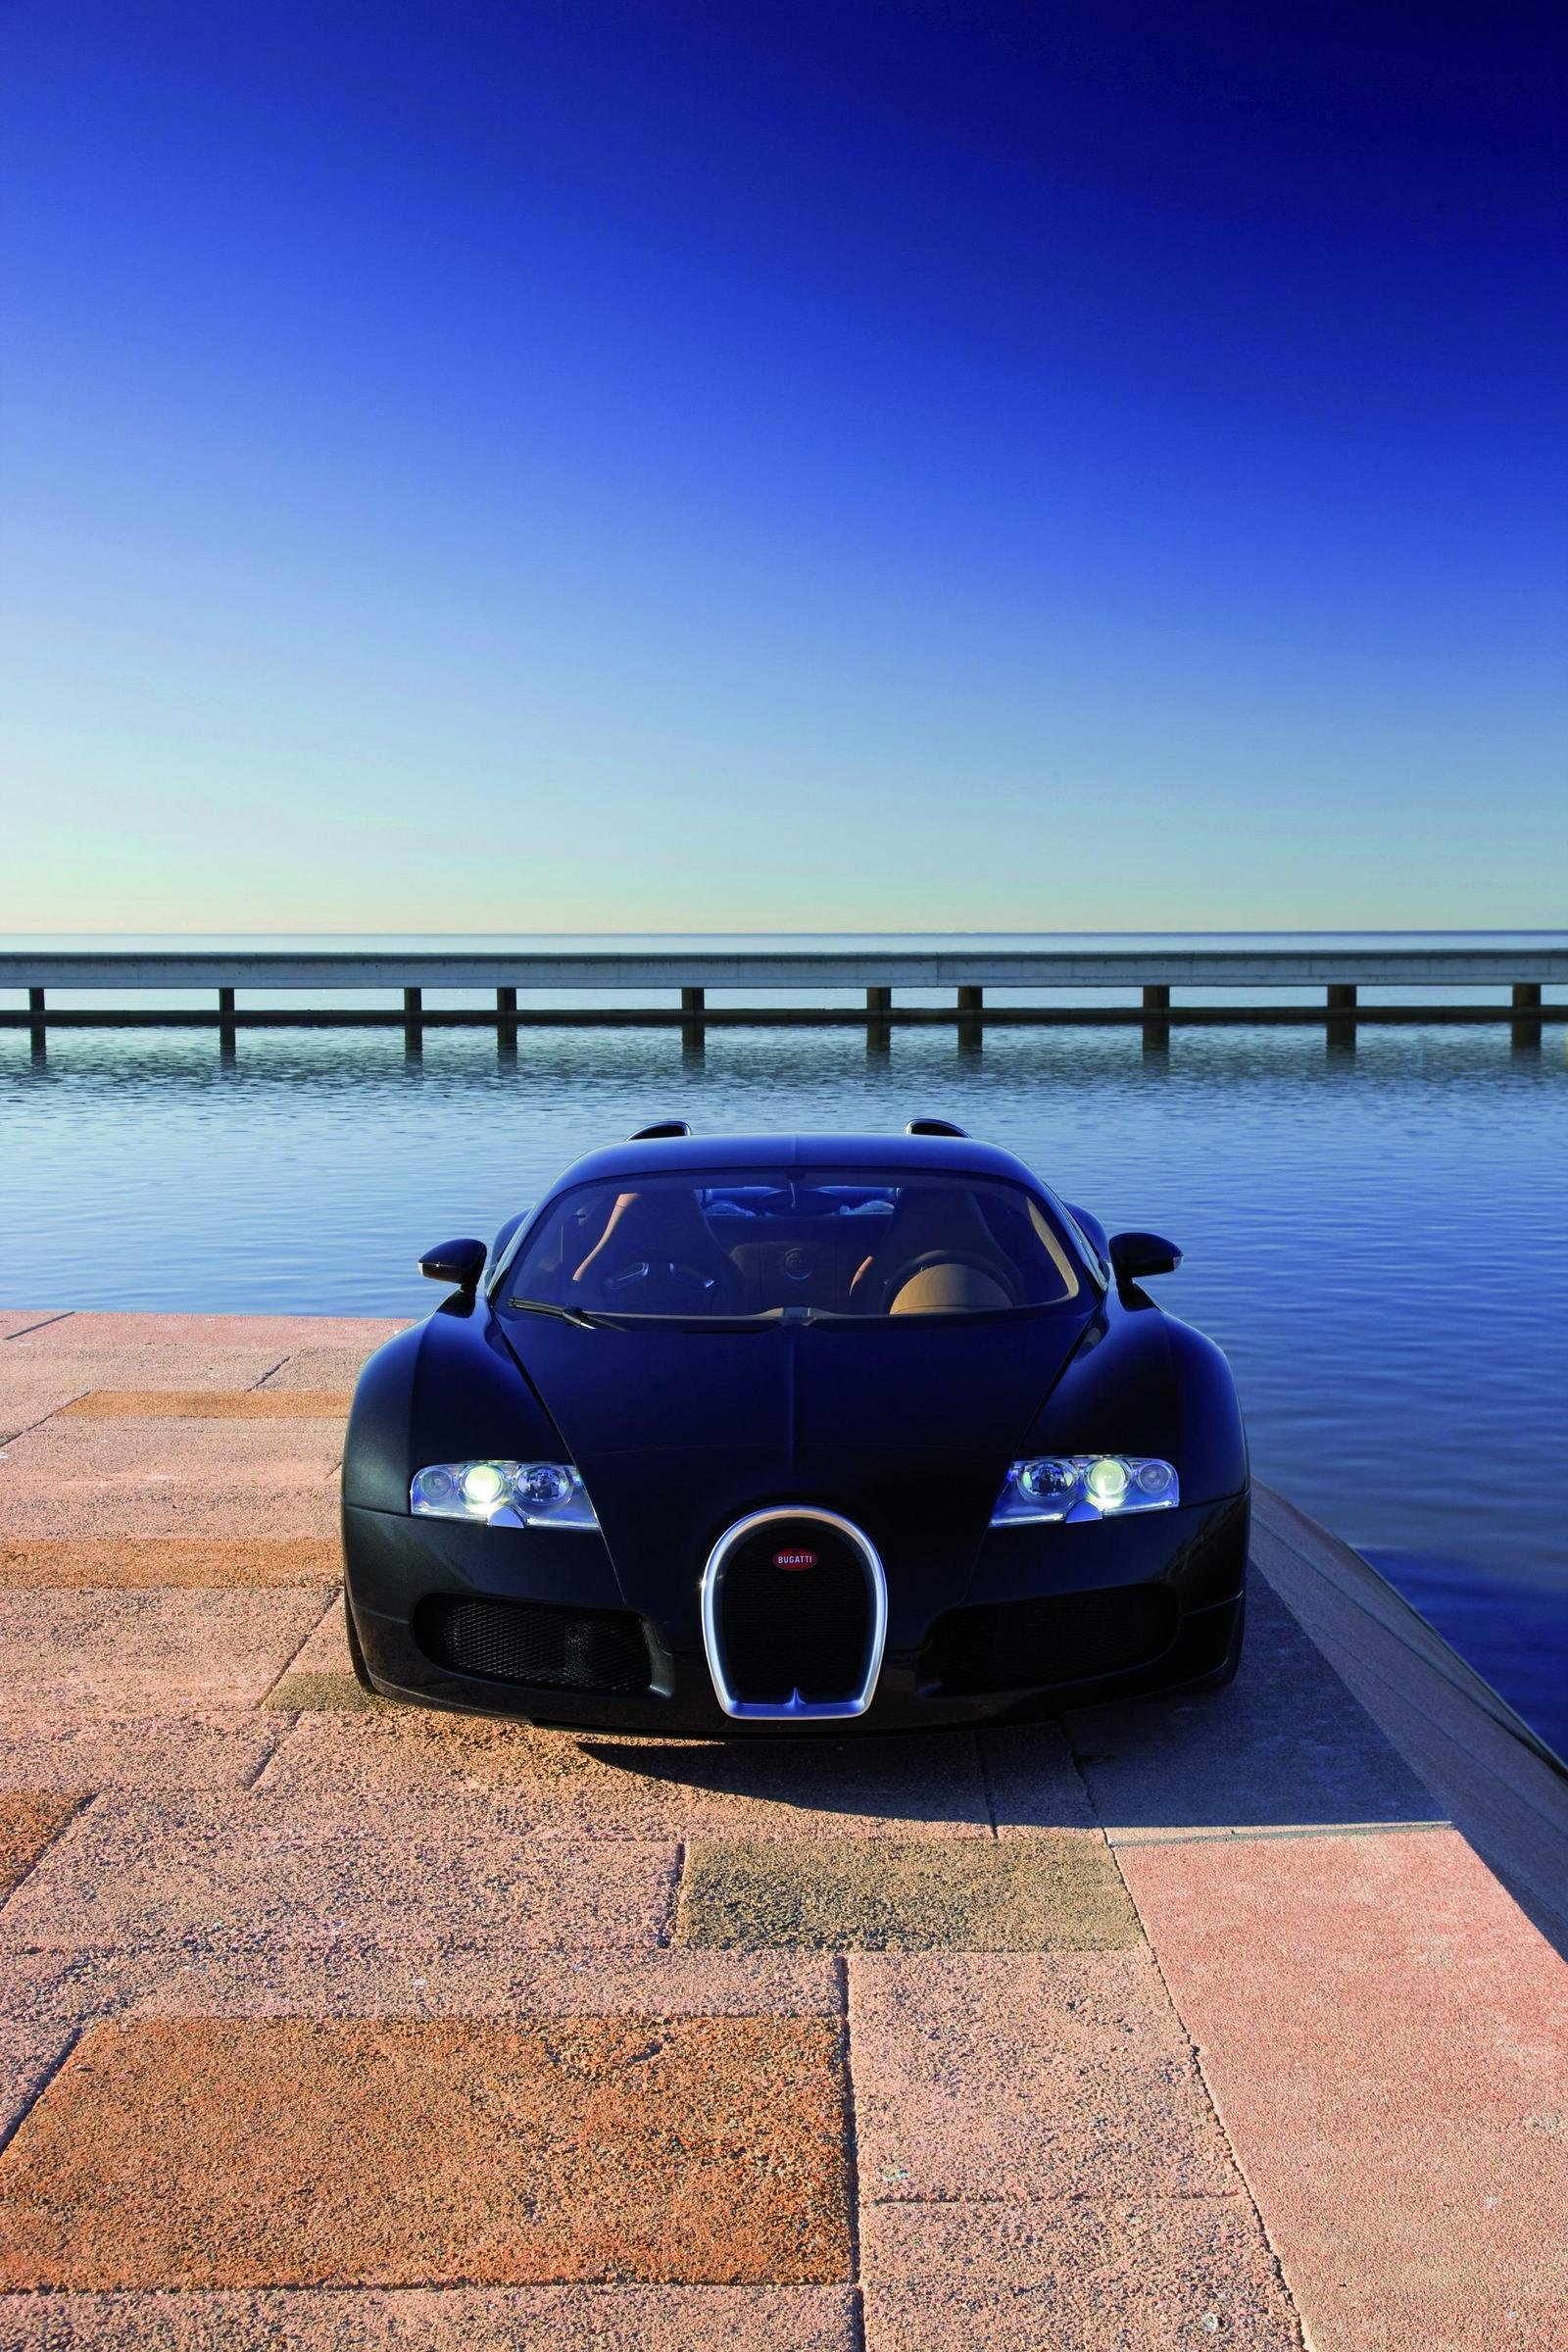 2006 bugatti veyron 16 4 picture 287511 car review. Black Bedroom Furniture Sets. Home Design Ideas